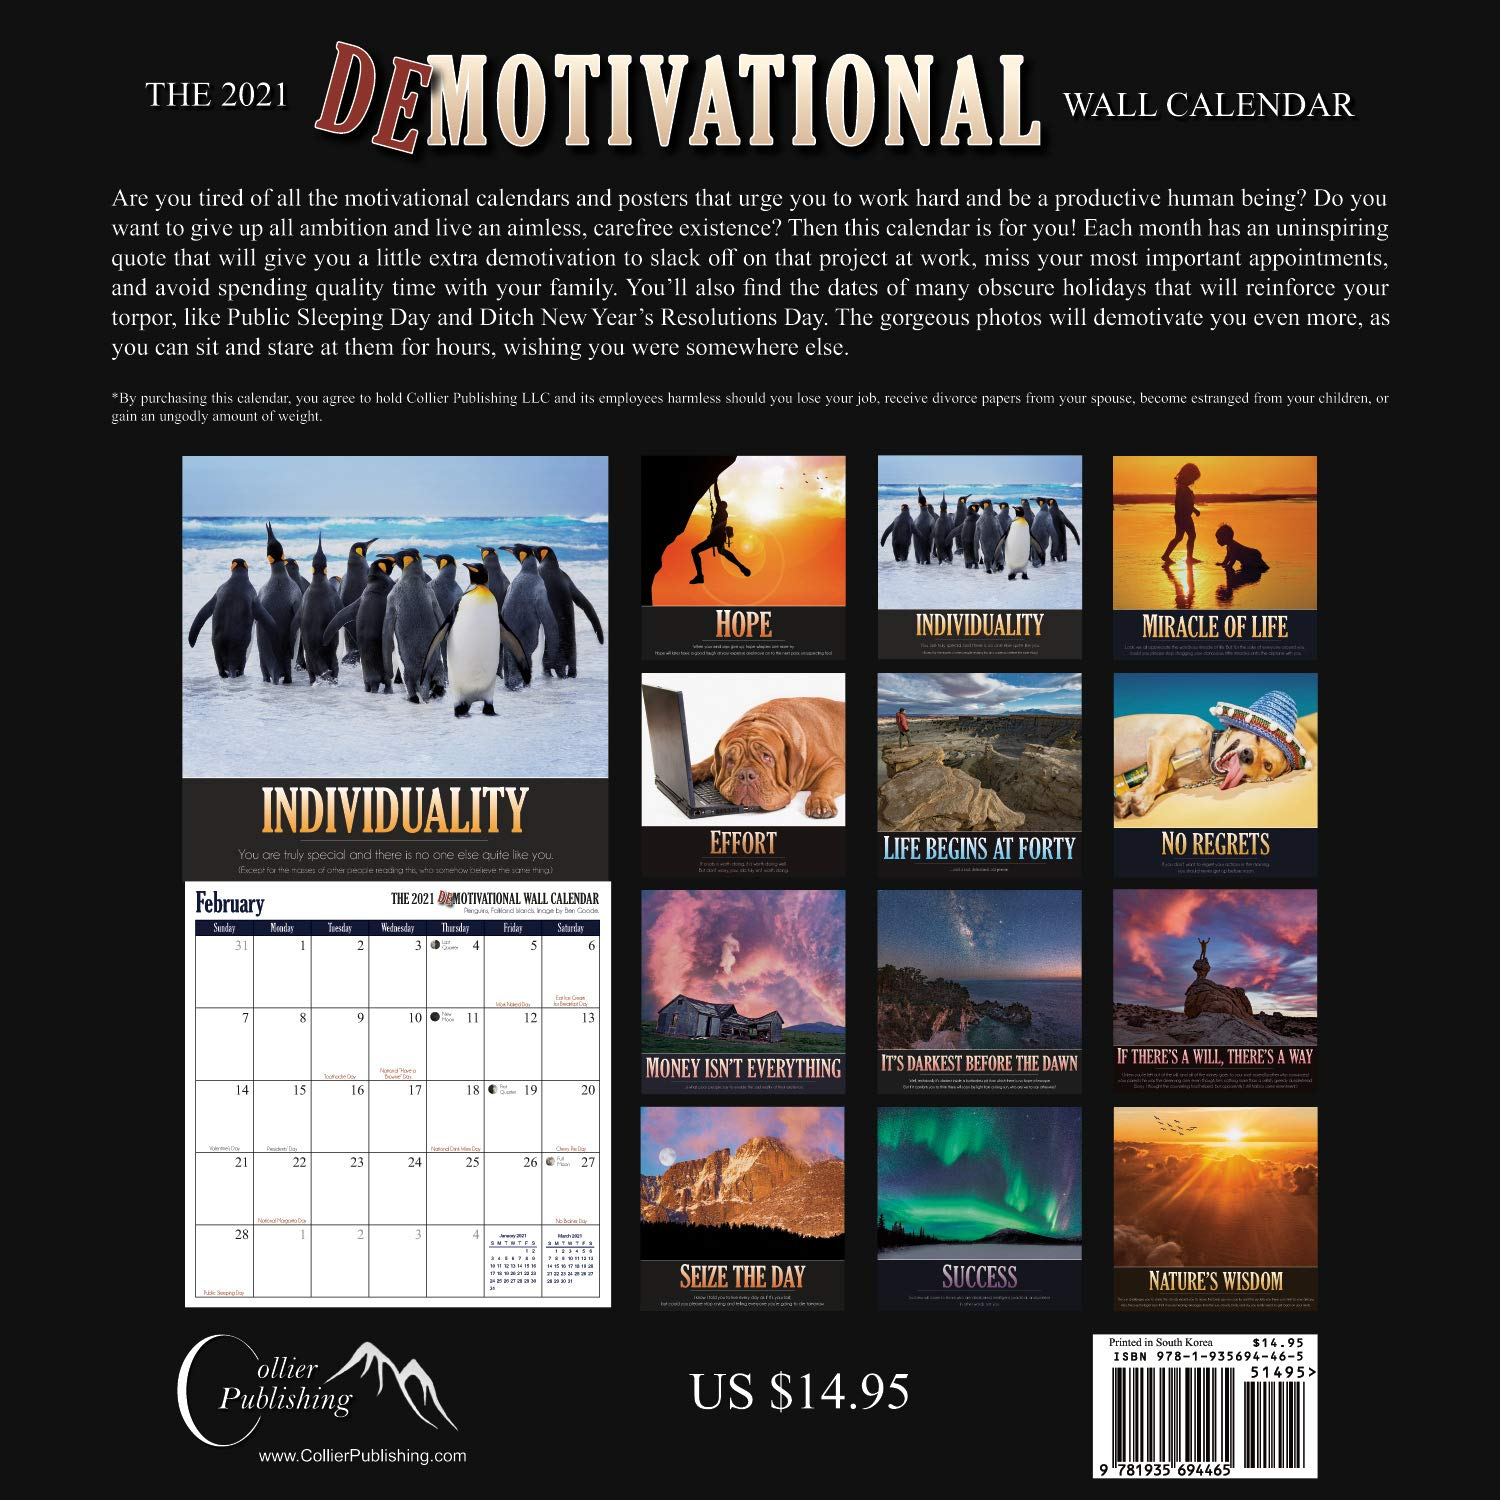 The 2021 Demotivational Wall Calendar (A Funny, Uninspirational